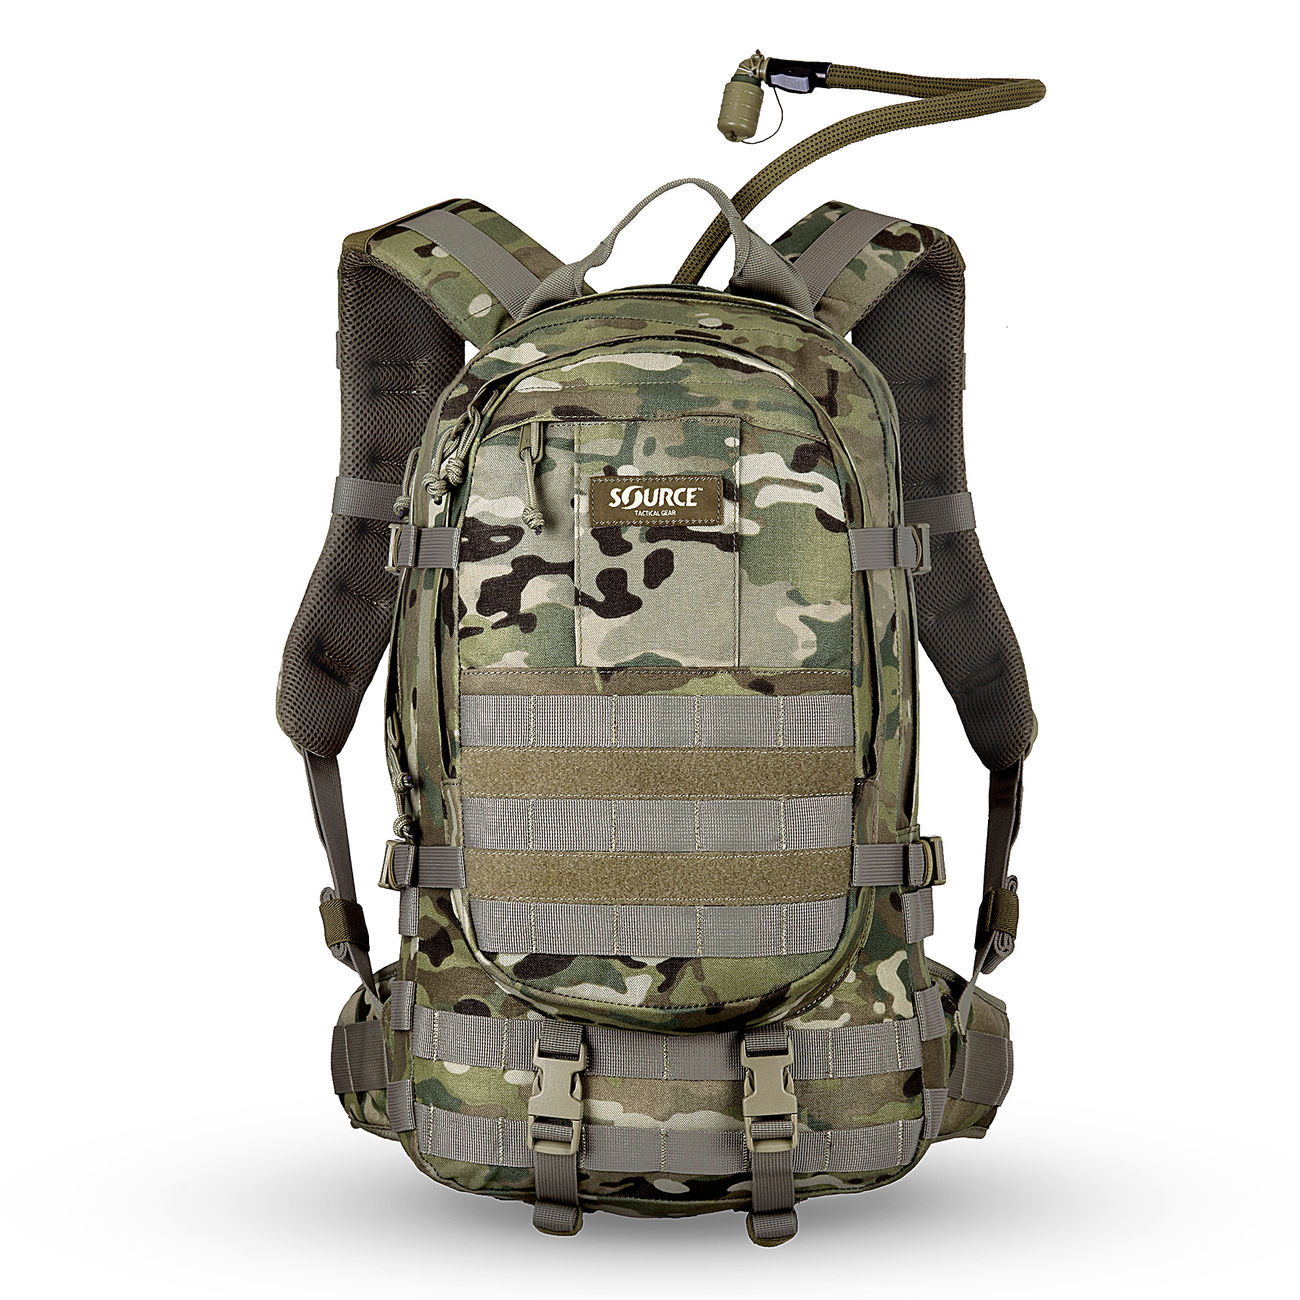 Source Tactical Gear Trink- und Rucksacksystem Assault 20L multicam 0